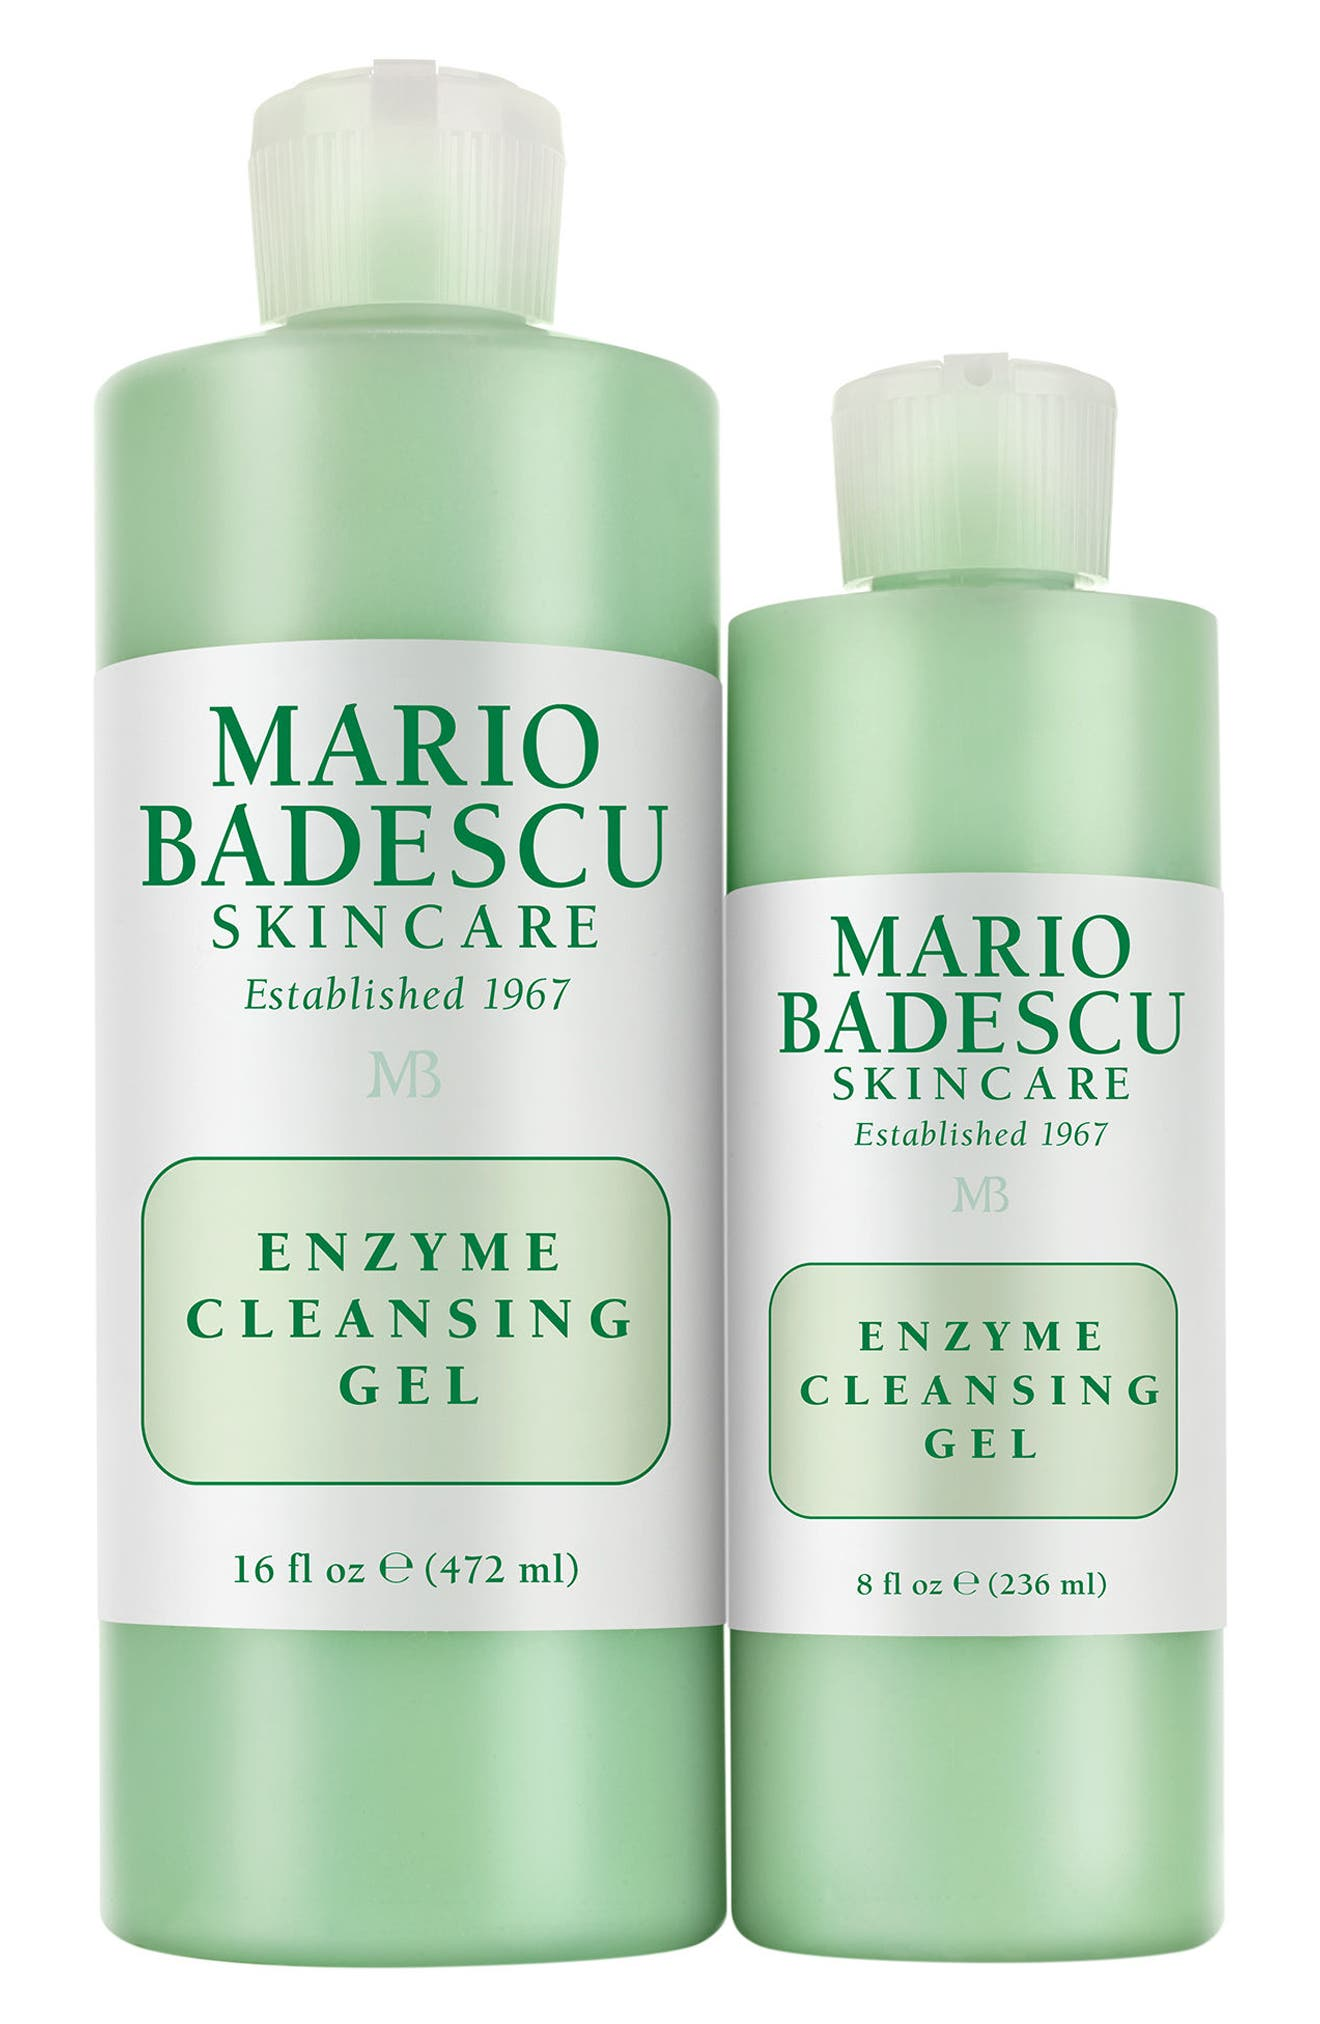 Mario Badescu Enzyme Cleansing Gel Duo (Nordstrom Exclusive) ($38 Value)